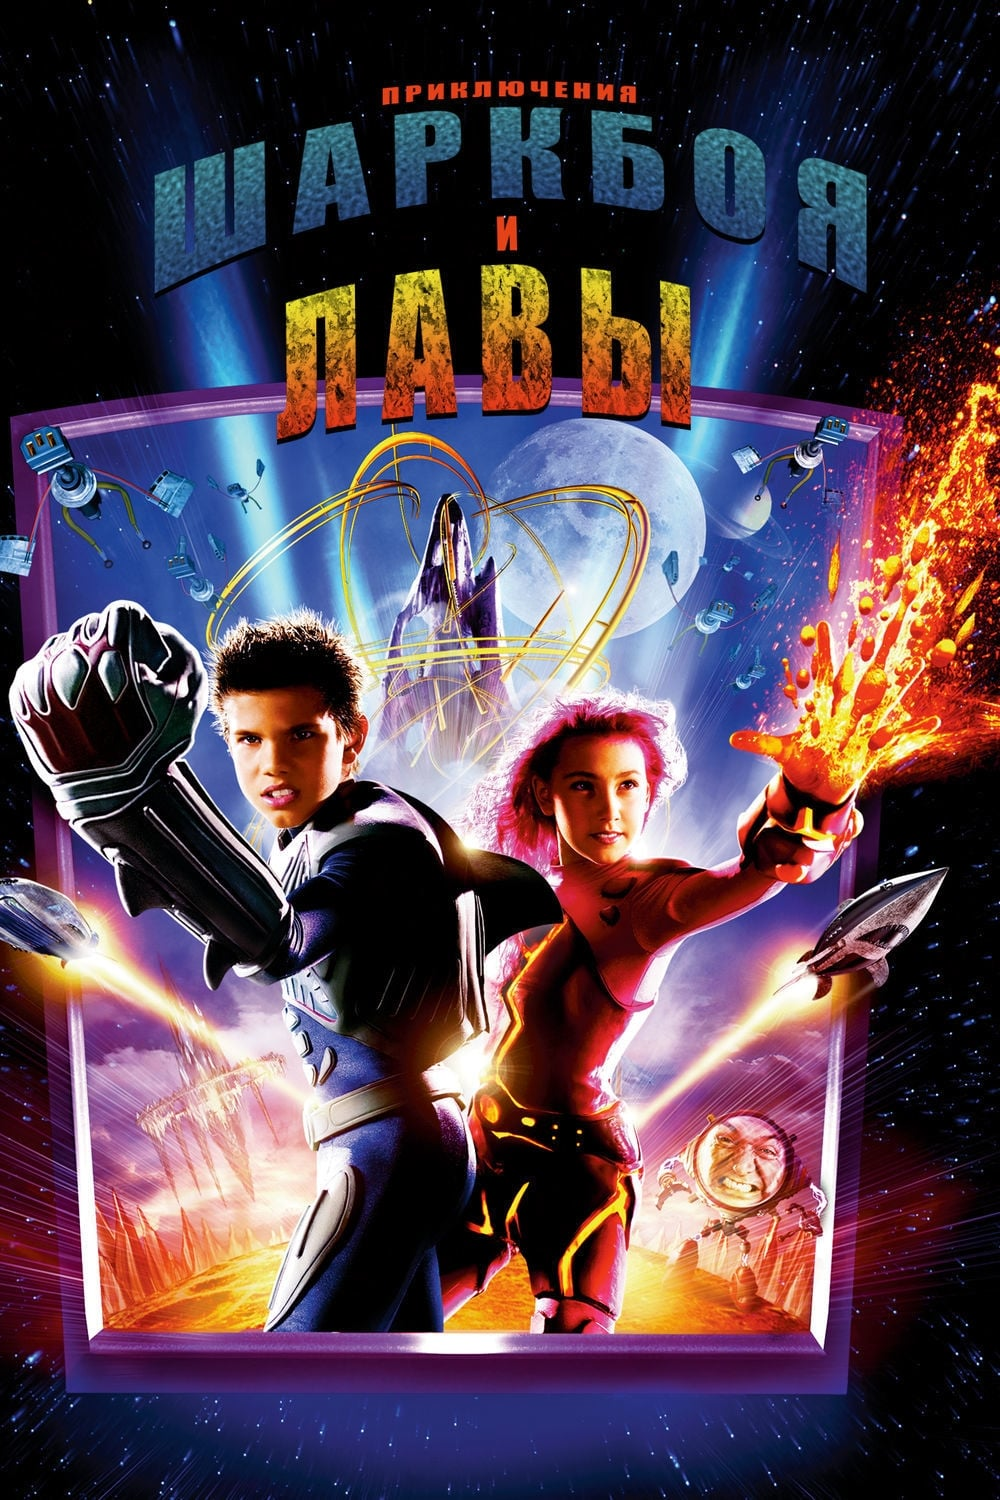 The Adventures Of Sharkboy And Lavagirl Wiki, Synopsis